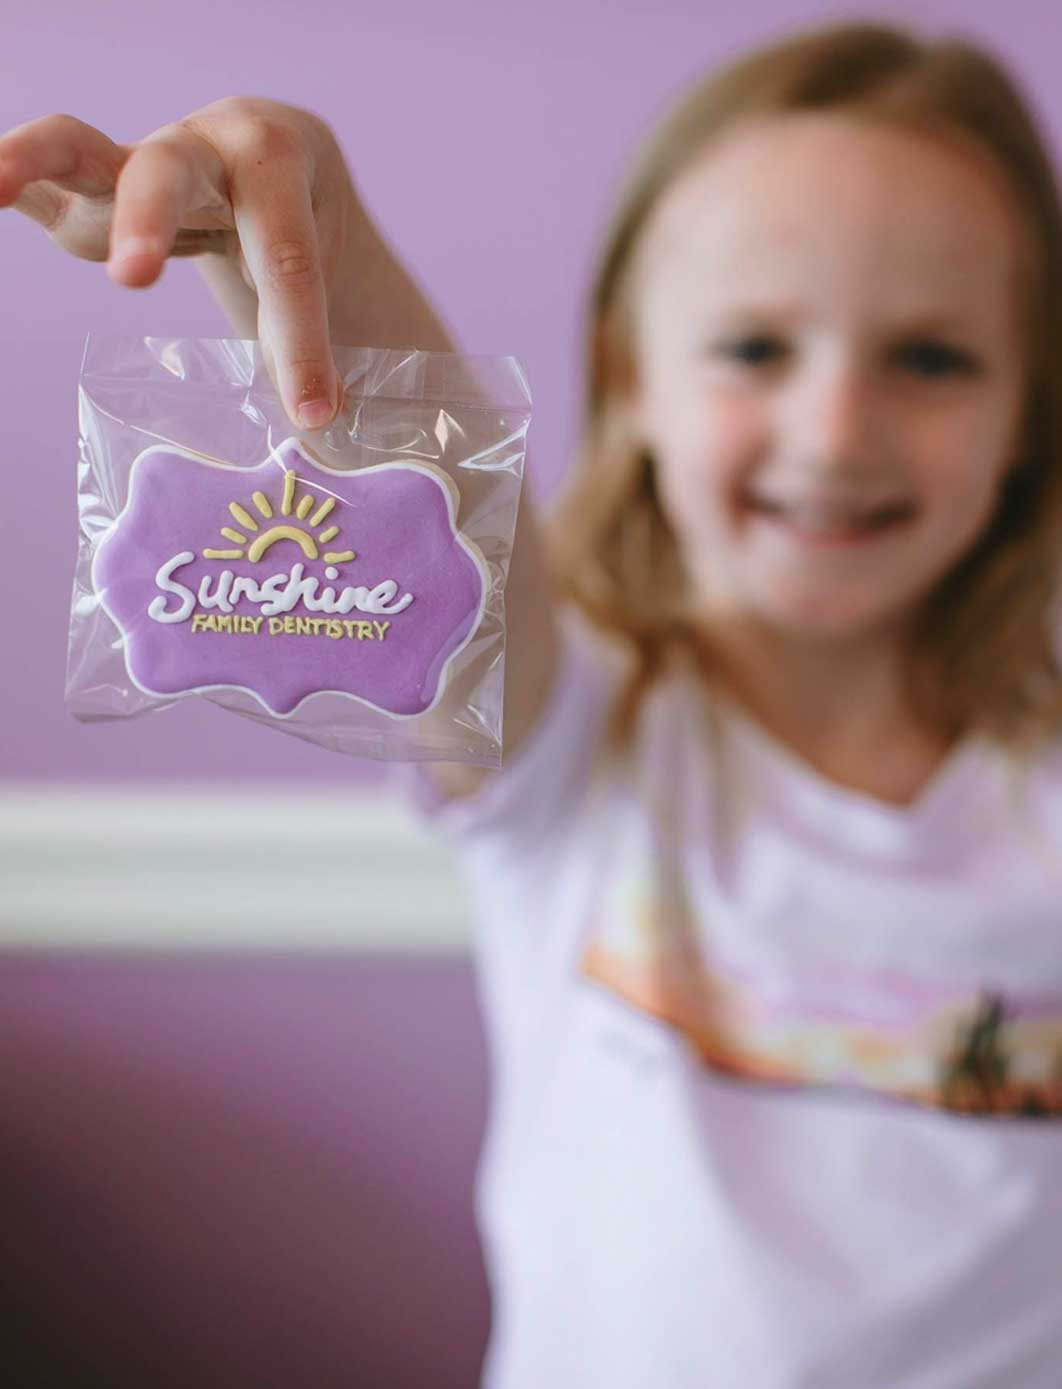 Photo of a girl holding a Sunshine Family Dentistry cookie